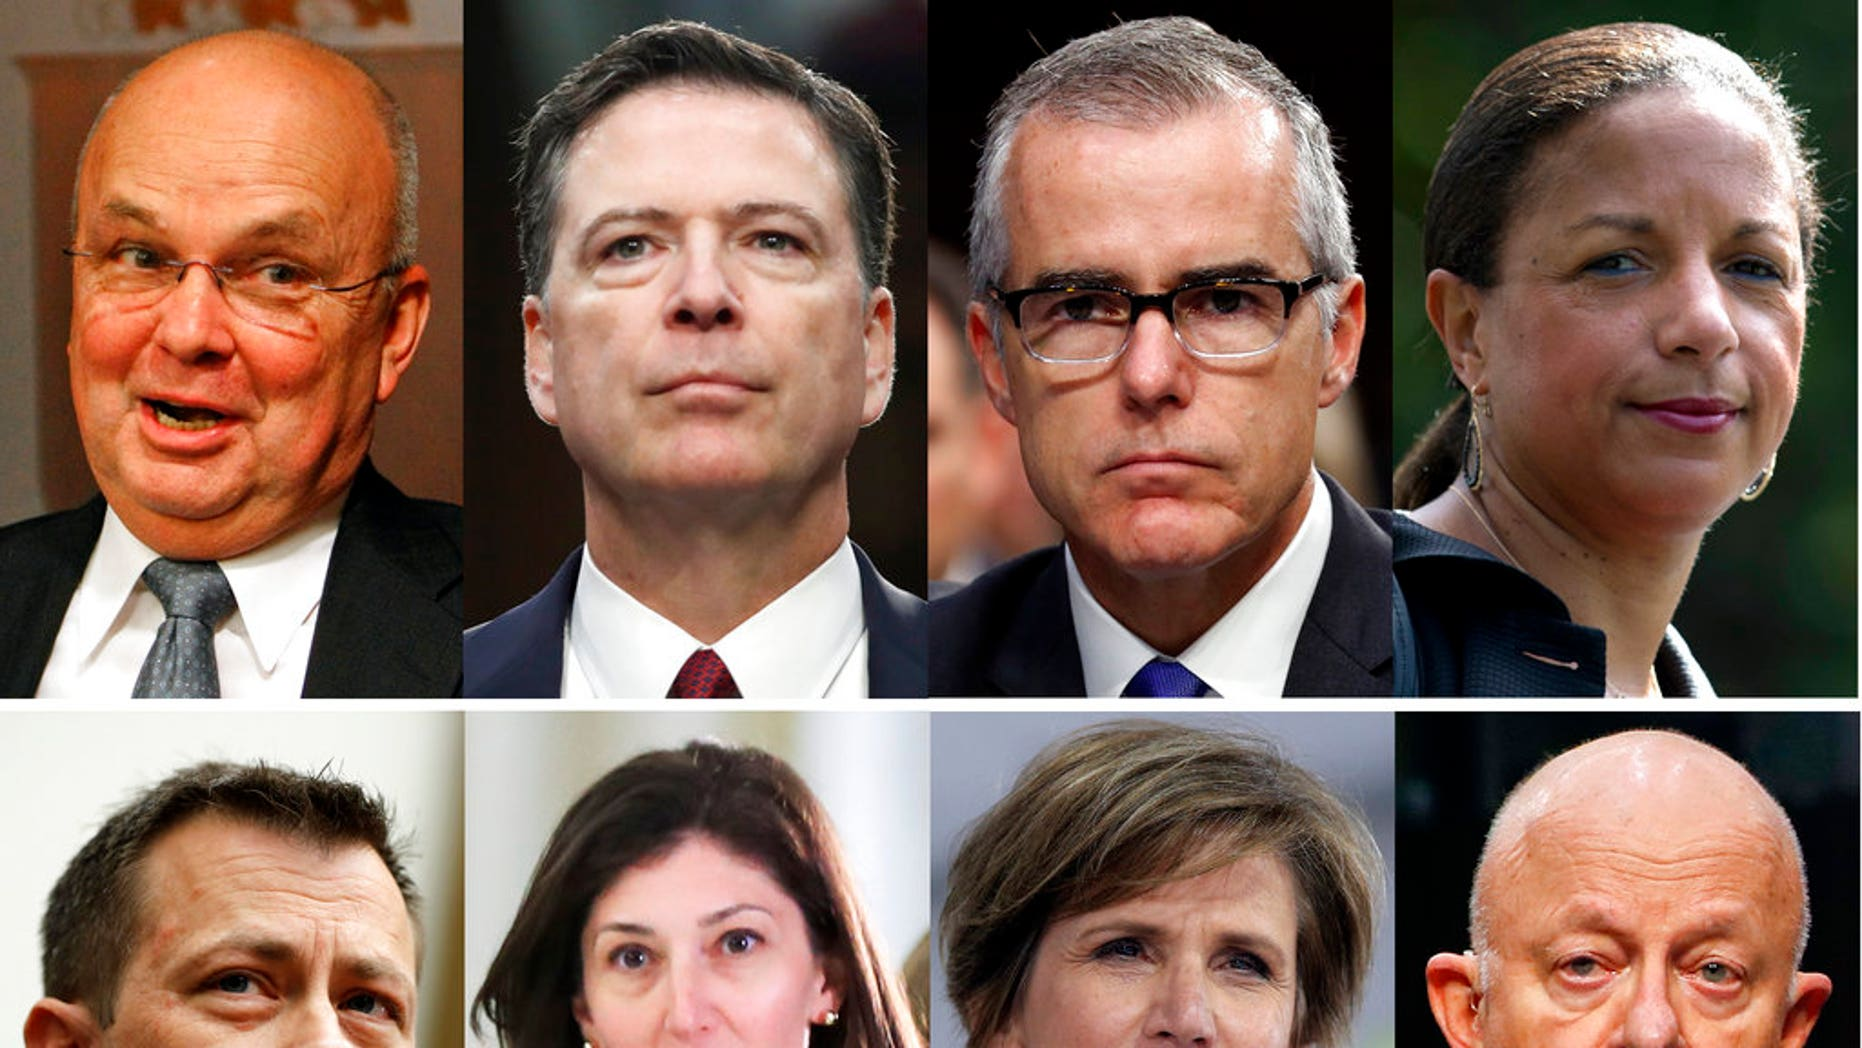 ADDS IDENTITY OF FORMER FBI LAWYER LISA PAGE  - These file photos, top row from left are former CIA Director Michael Hayden, former FBI Director James Comey, former acting FBI director Andrew McCabe and former national security adviser Susan Rice. Bottom row from left are former FBI Deputy Assistant Director Peter Strzok, former FBI lawyer Lisa Page, former Deputy Attorney General Sally Yates and former National Intelligence Director James Clapper. President Donald Trump acted Aug. 15, 2018, on a threat and revoked the security clearance of former CIA Director John Brennan, citing a constitutional responsibility to protect classified information. Trump says he is reviewing security clearances for nine other individuals, including the eight pictured. (AP Photo/Files)